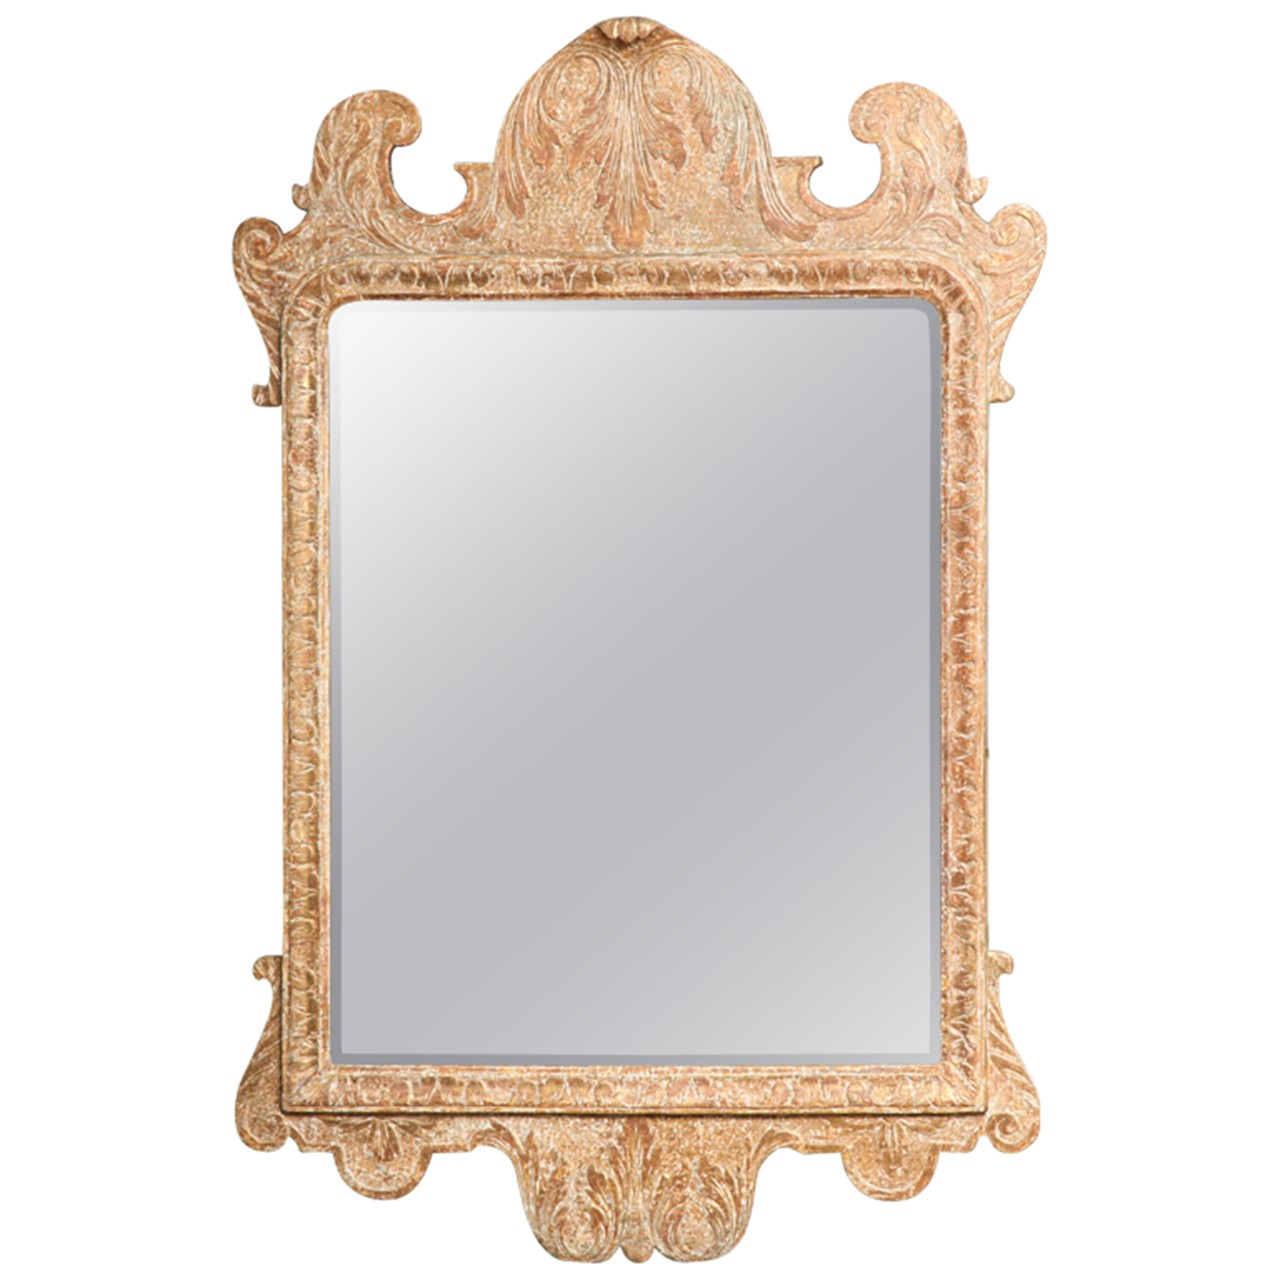 George I Carved Gesso Gilt Mirror